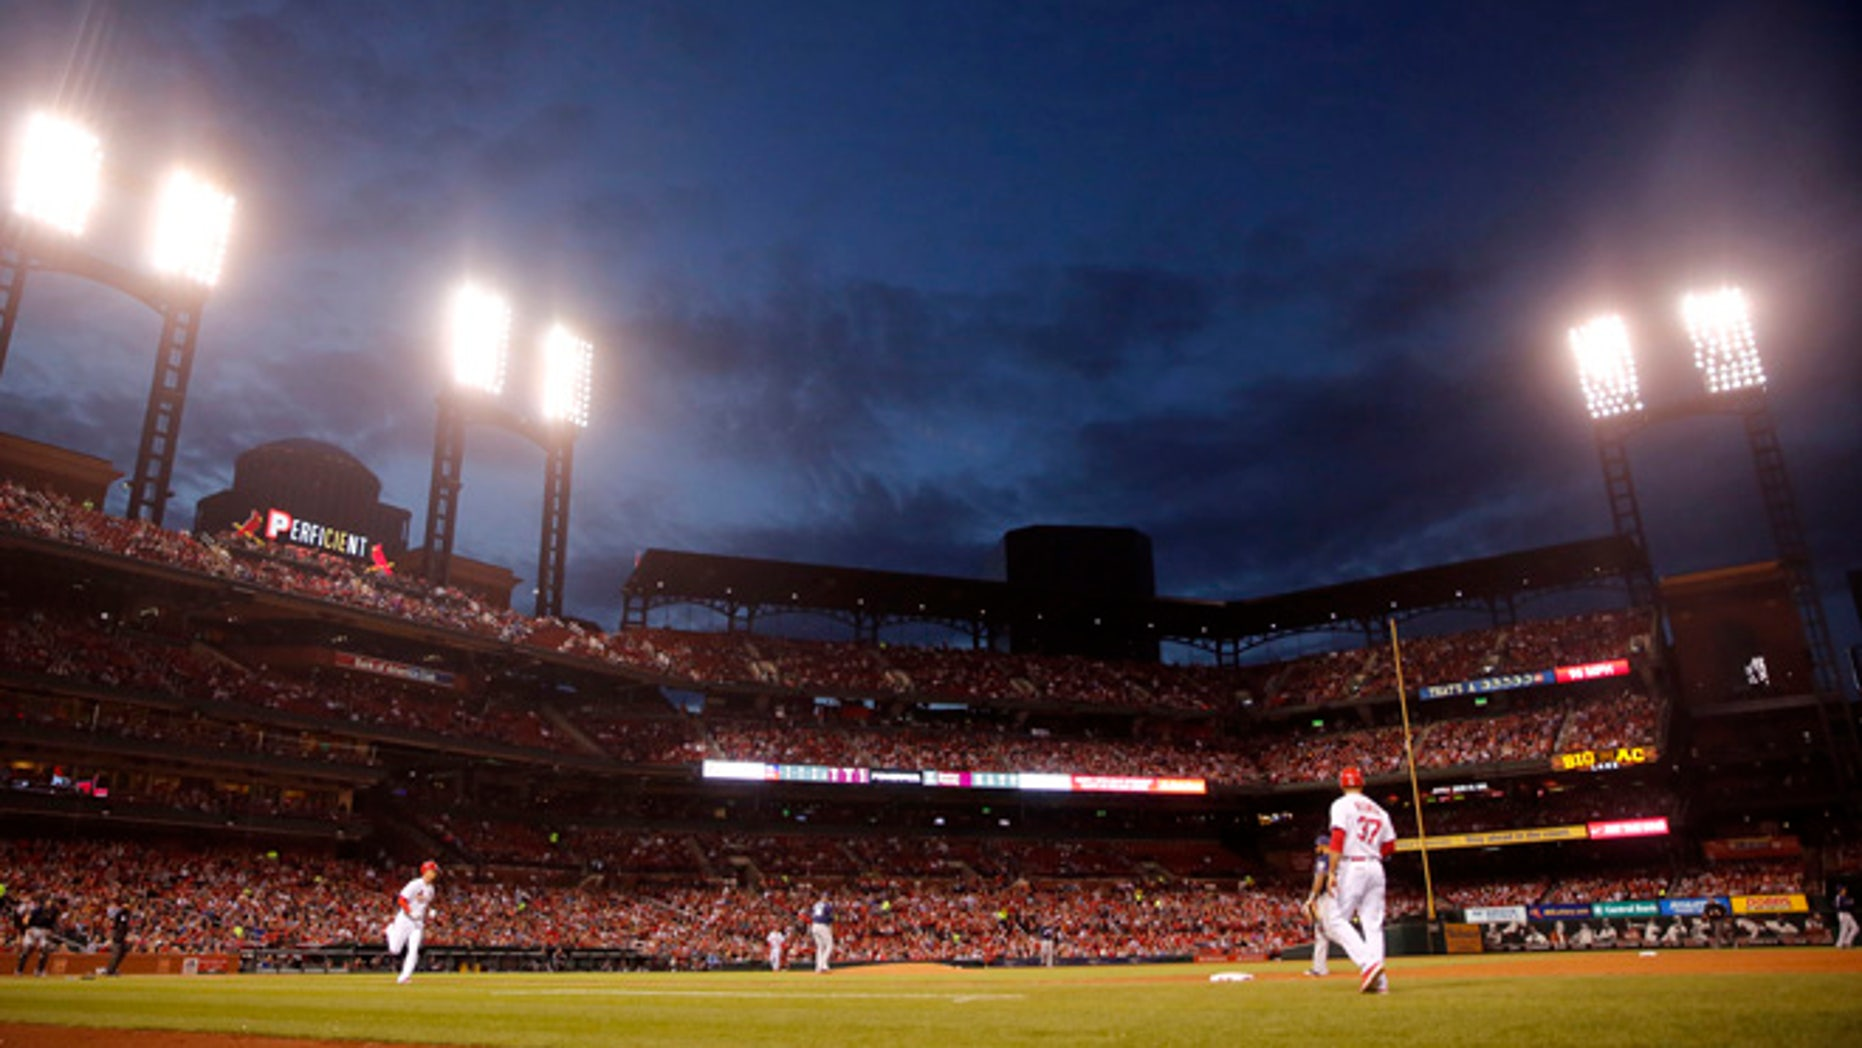 St. Louis Cardinals' Stephen Piscotty heads to first on a single as dusk falls over Busch Stadium during the fourth inning of a baseball game against the Milwaukee Brewers Tuesday, May 2, 2017, in St. Louis. (AP Photo/Jeff Roberson)